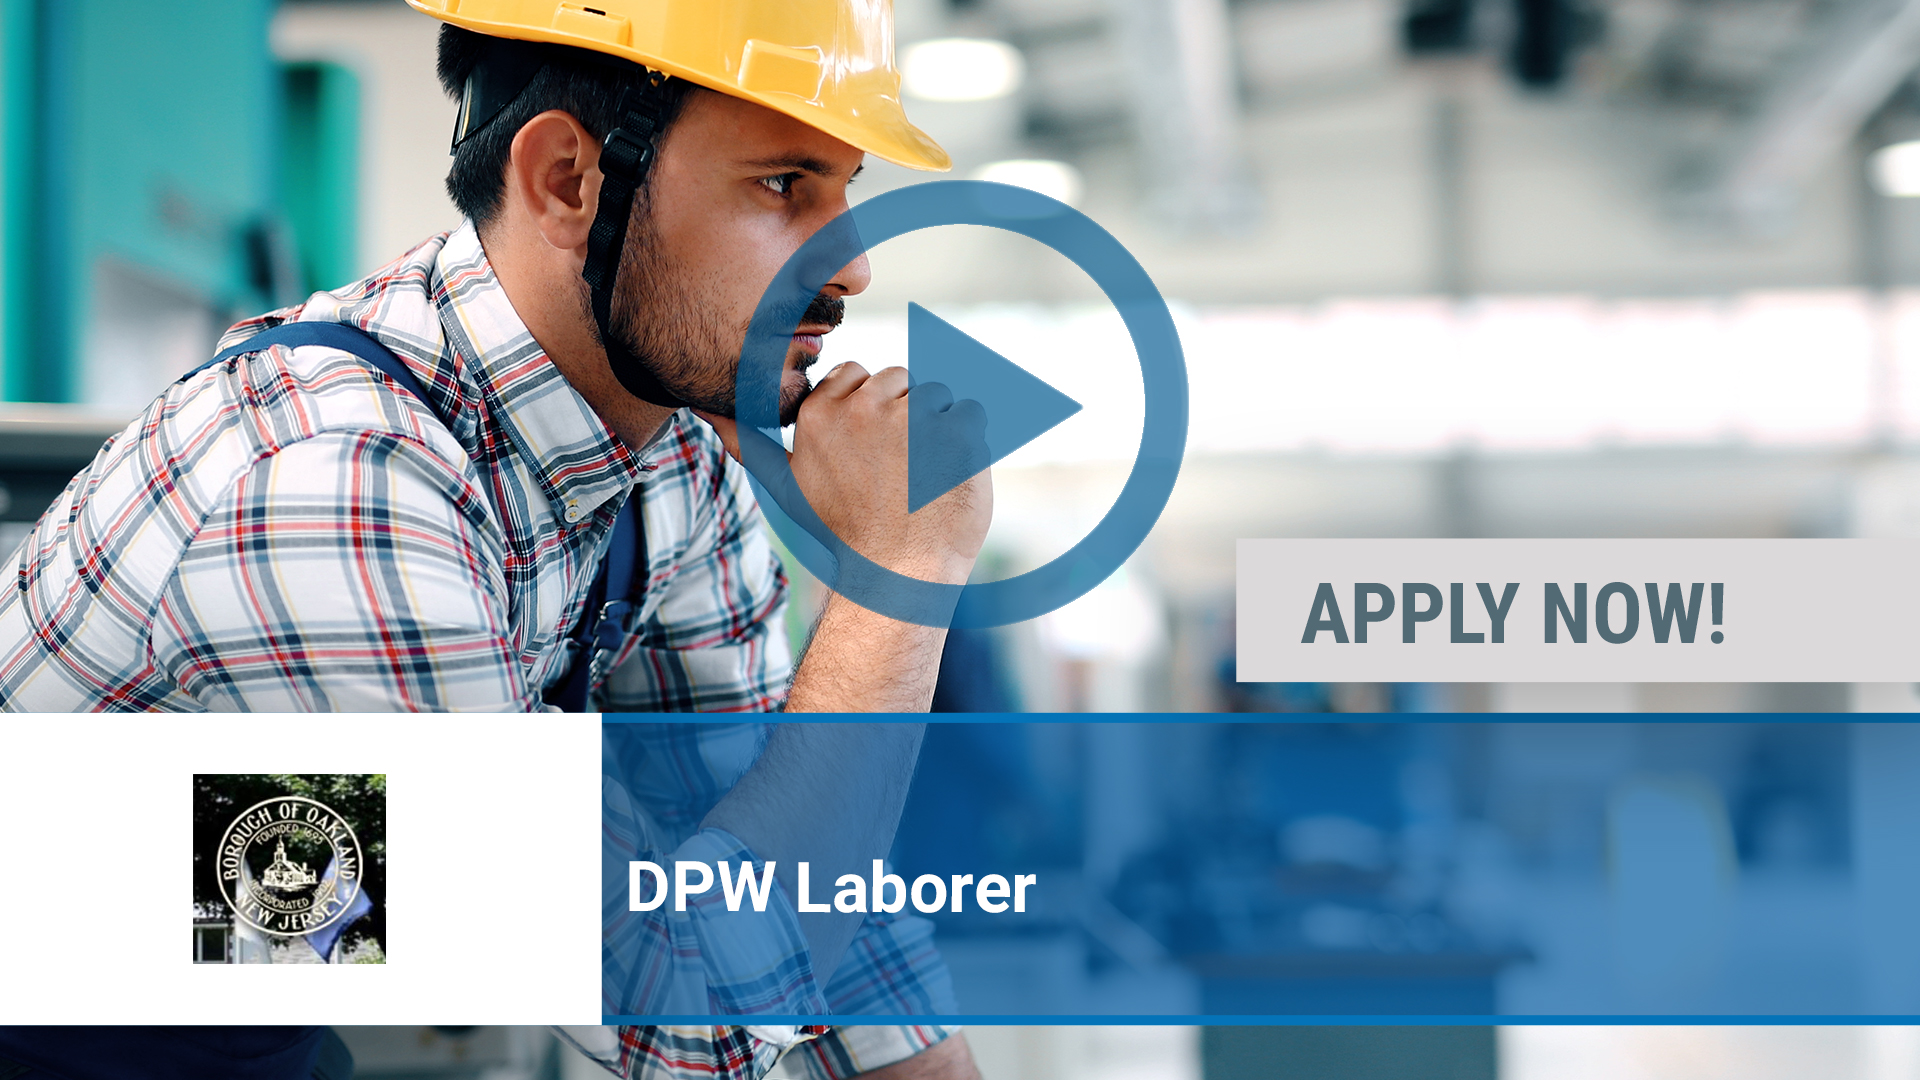 Watch our careers video for available job opening DPW Laborer in Oakland, NJ